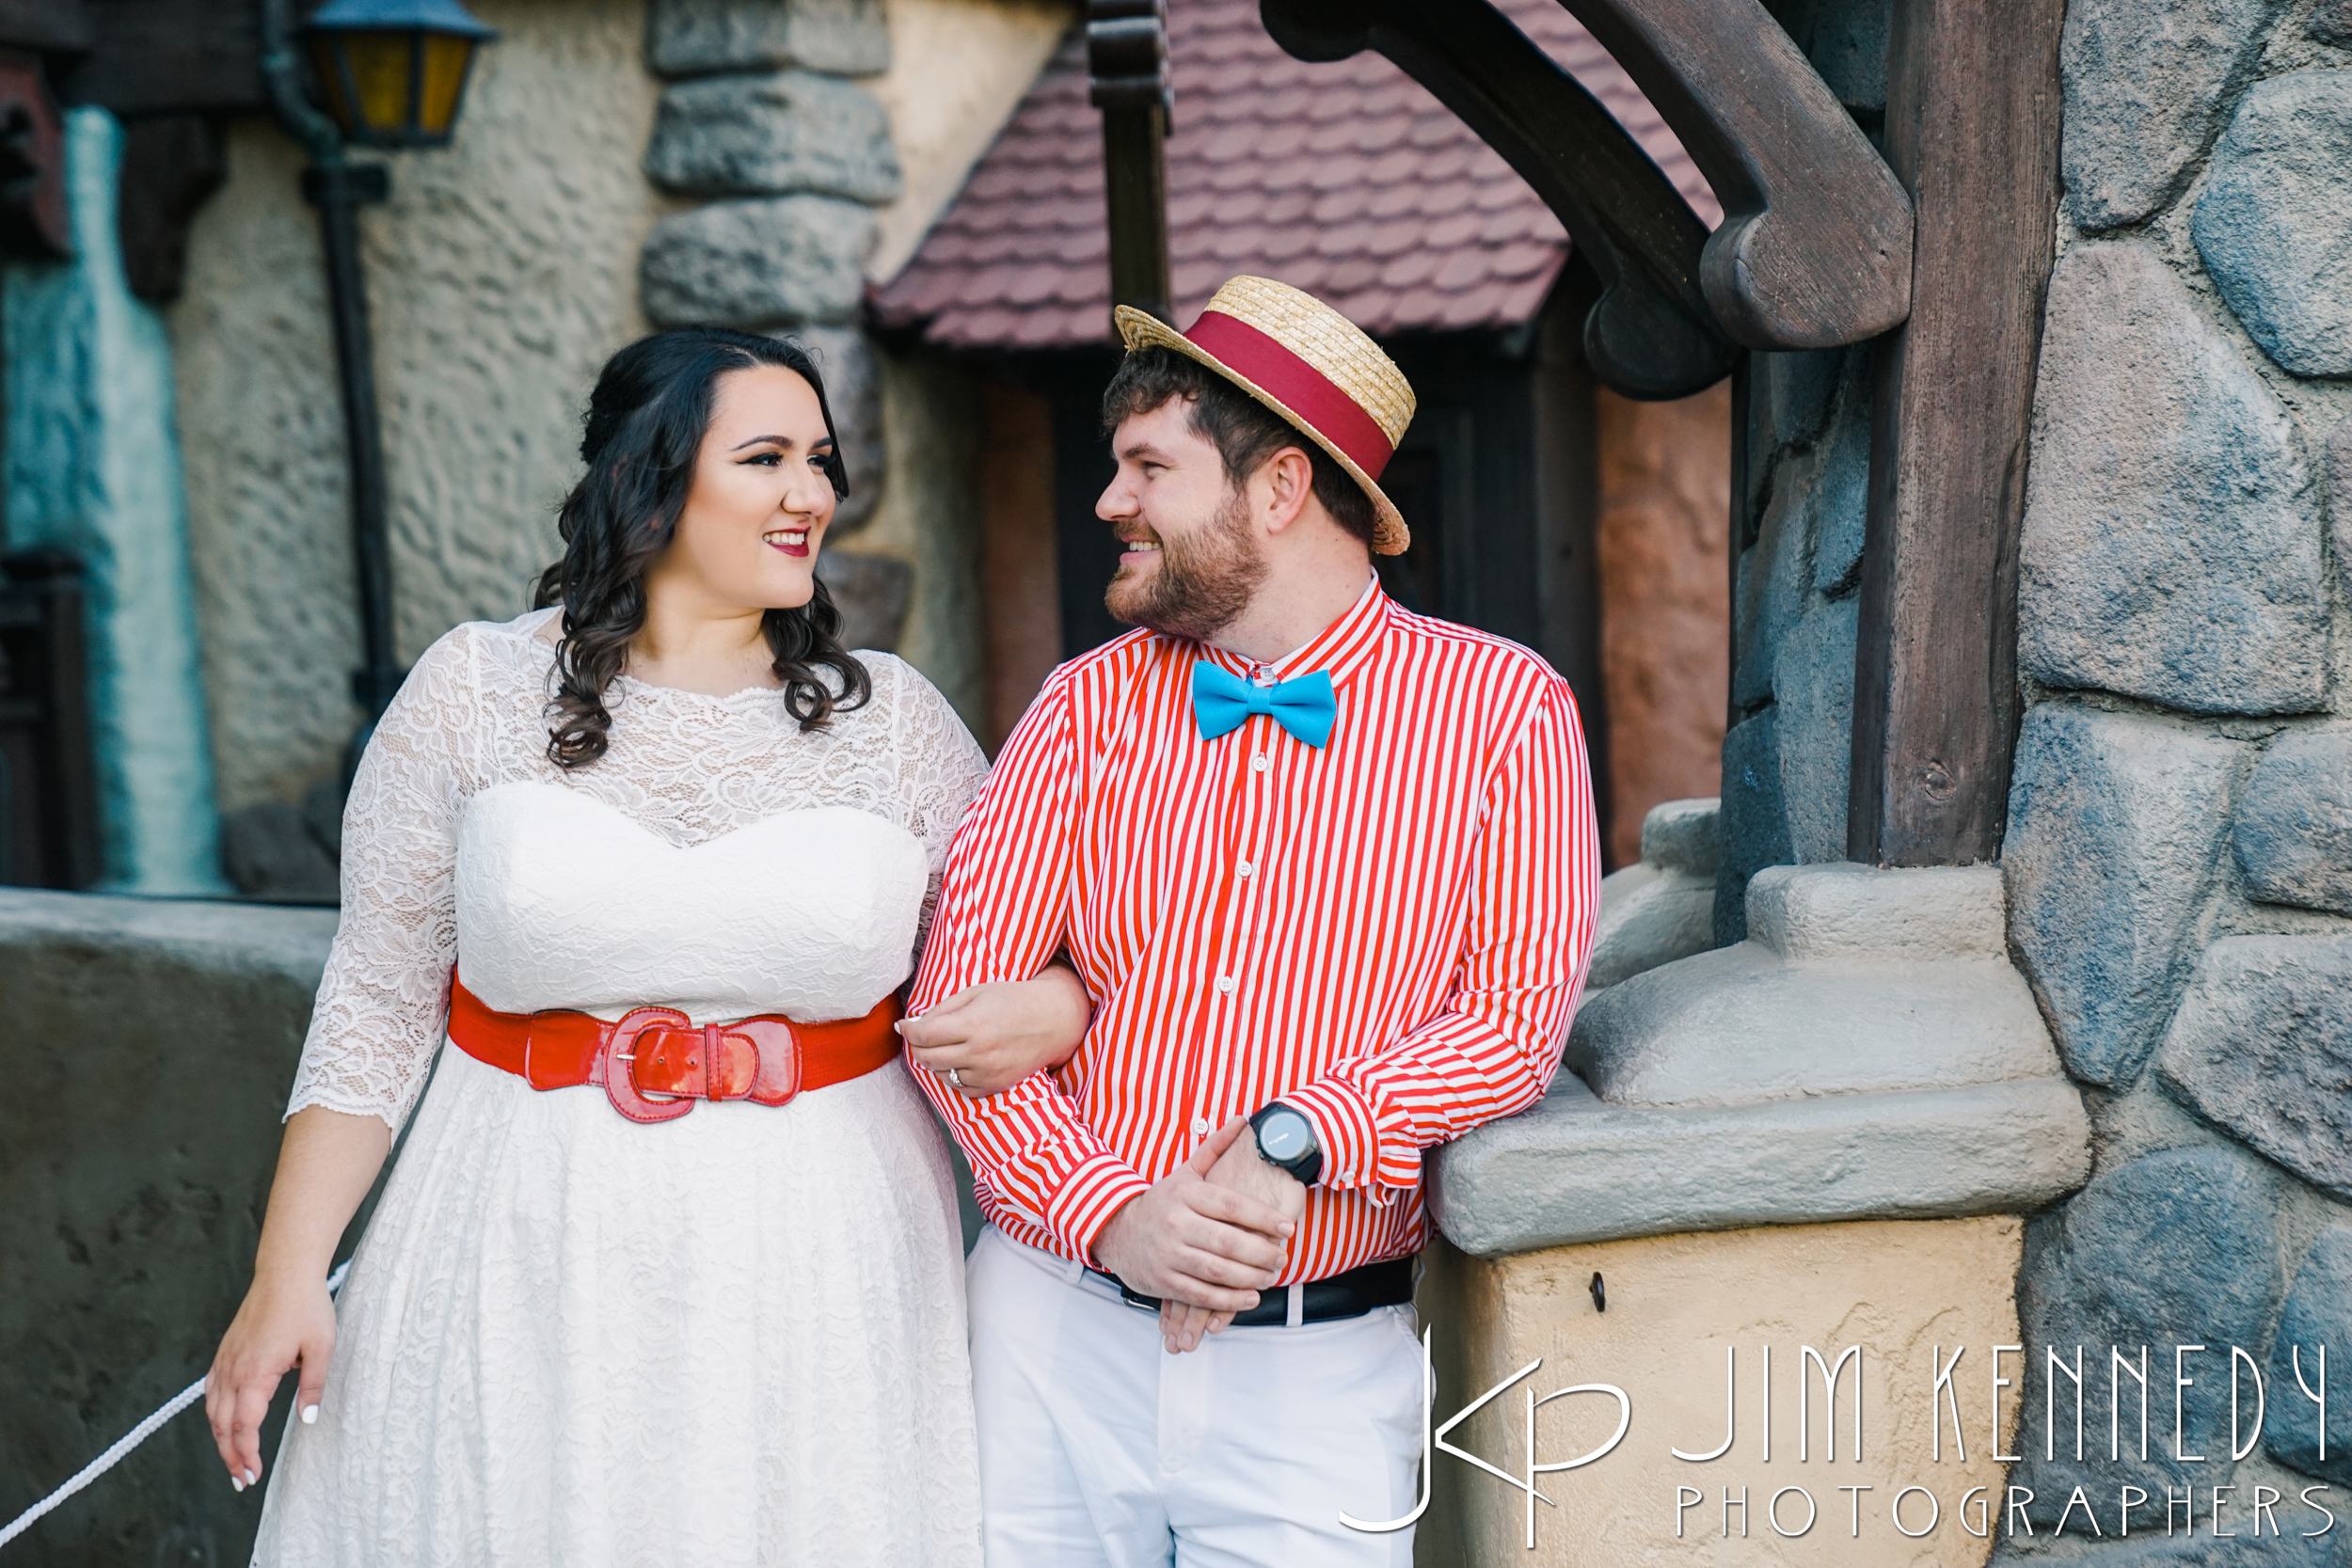 Disneyland-Engagement-0010.JPG